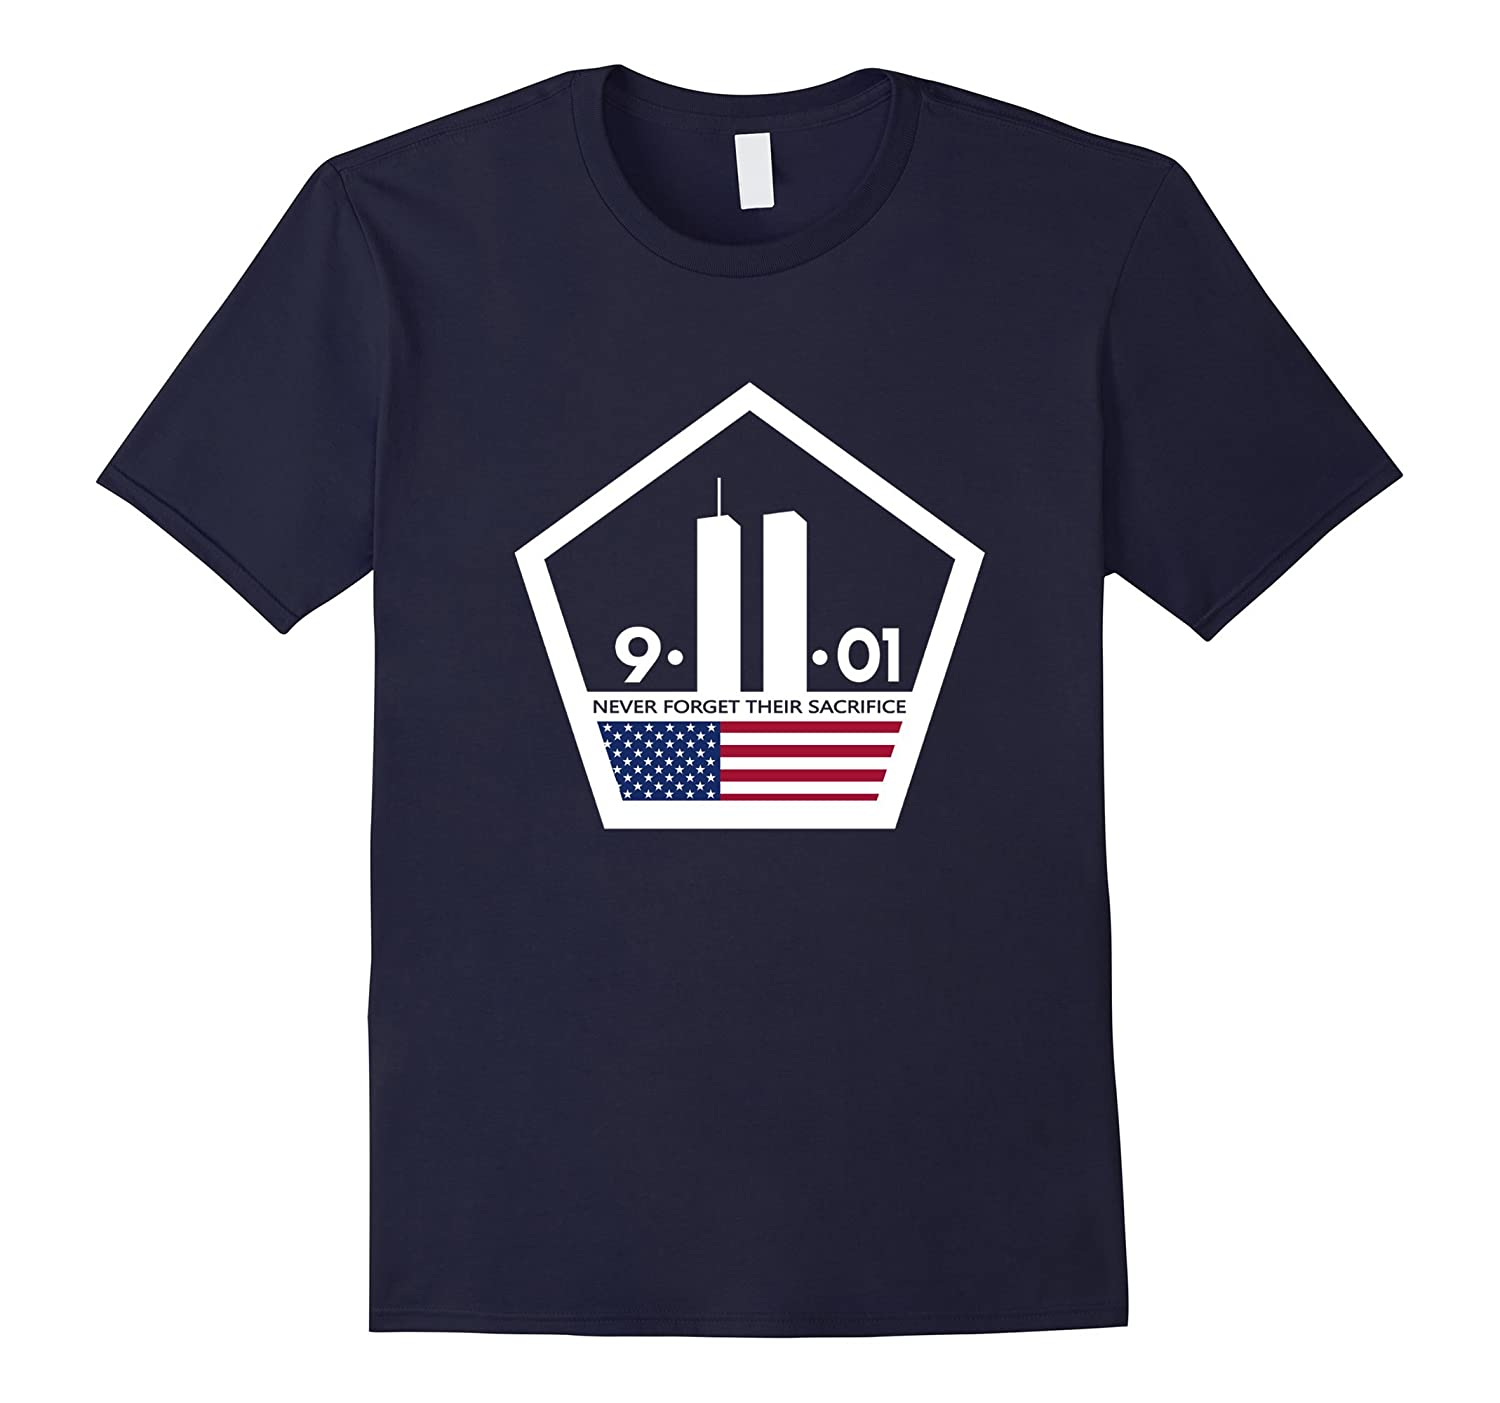 9/11 2001 Memorial Never Forget Their Sacrifice Tee Tshirts-TH